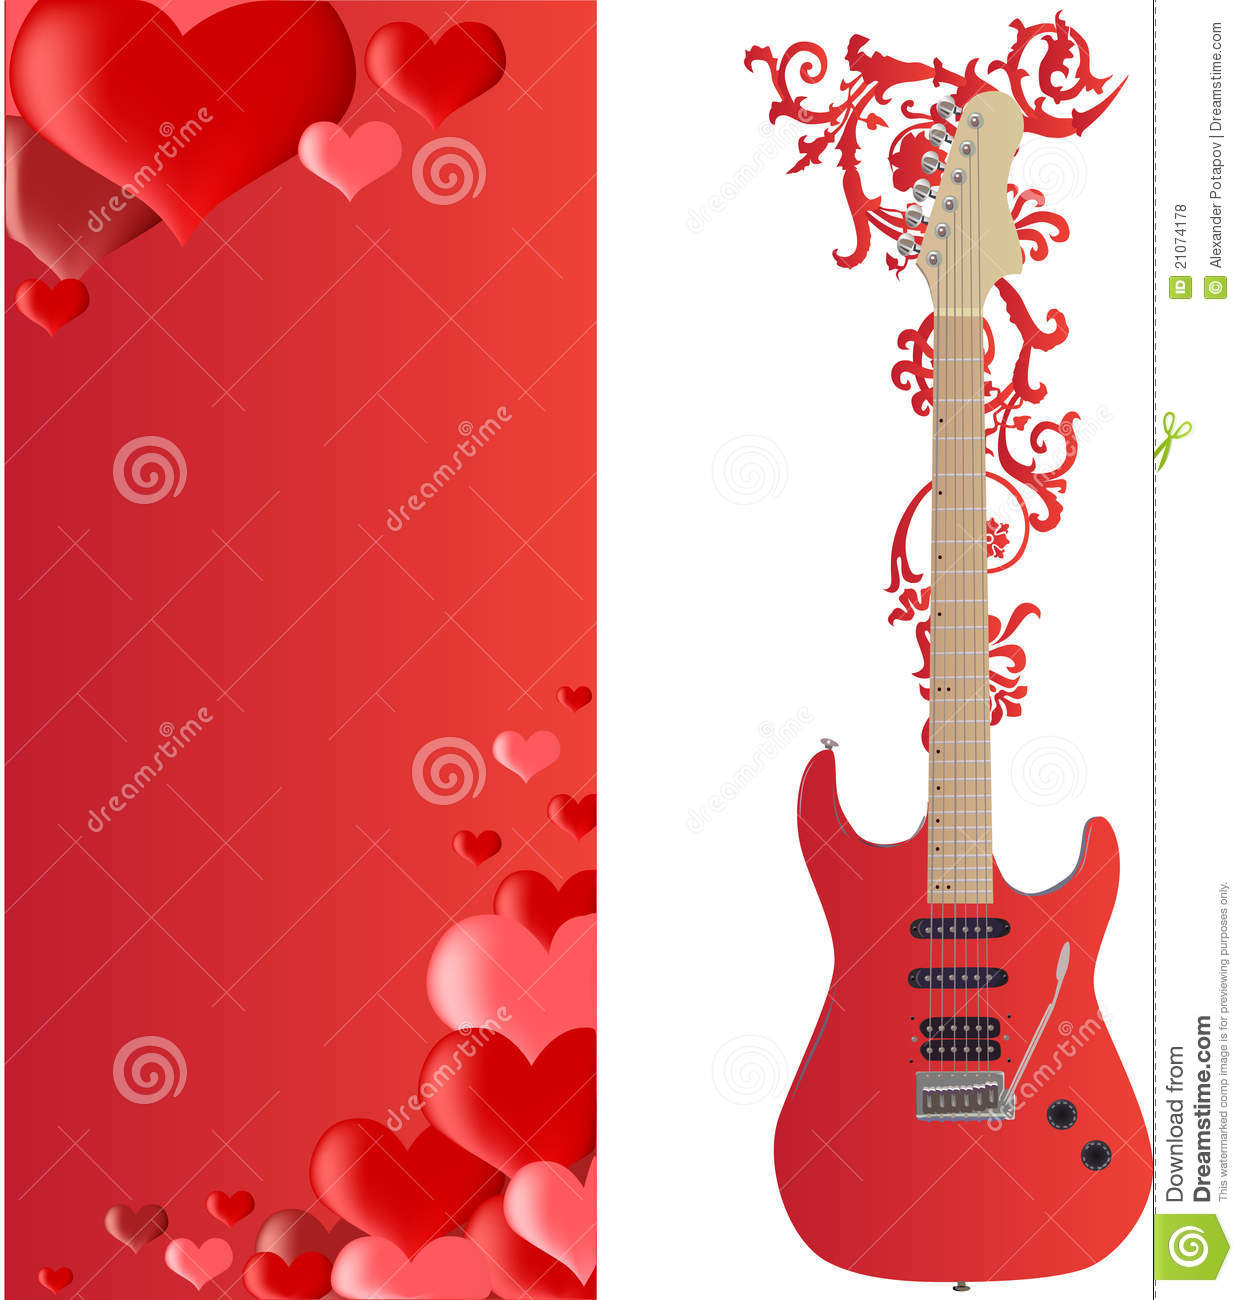 red guitar and hearts frame